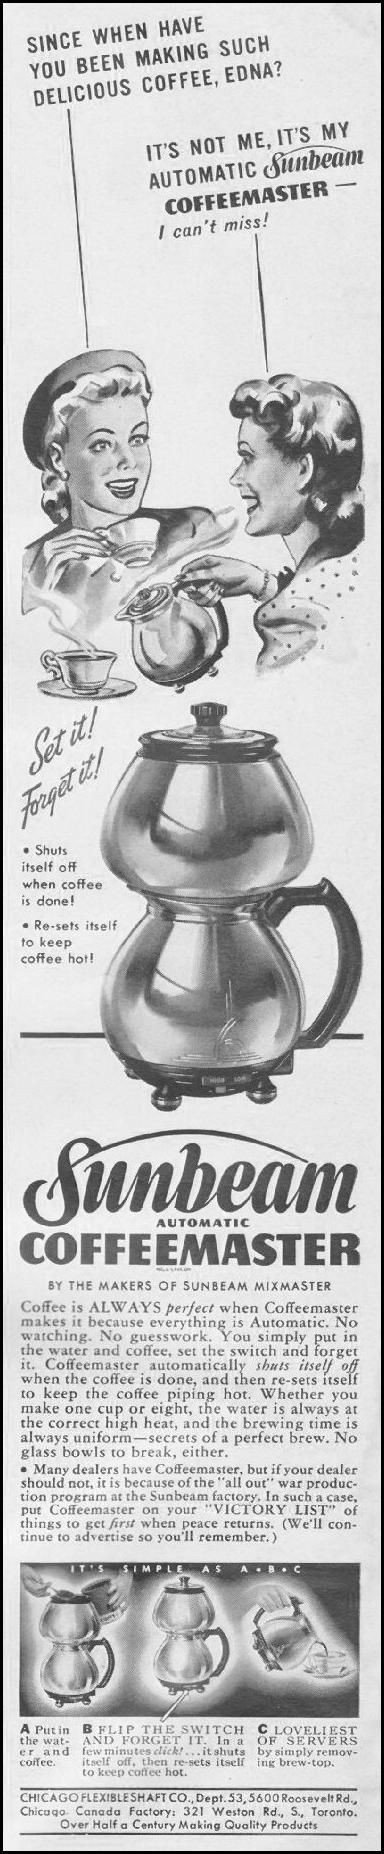 SUNBEAM AUTOMATIC COFFEEMASTER